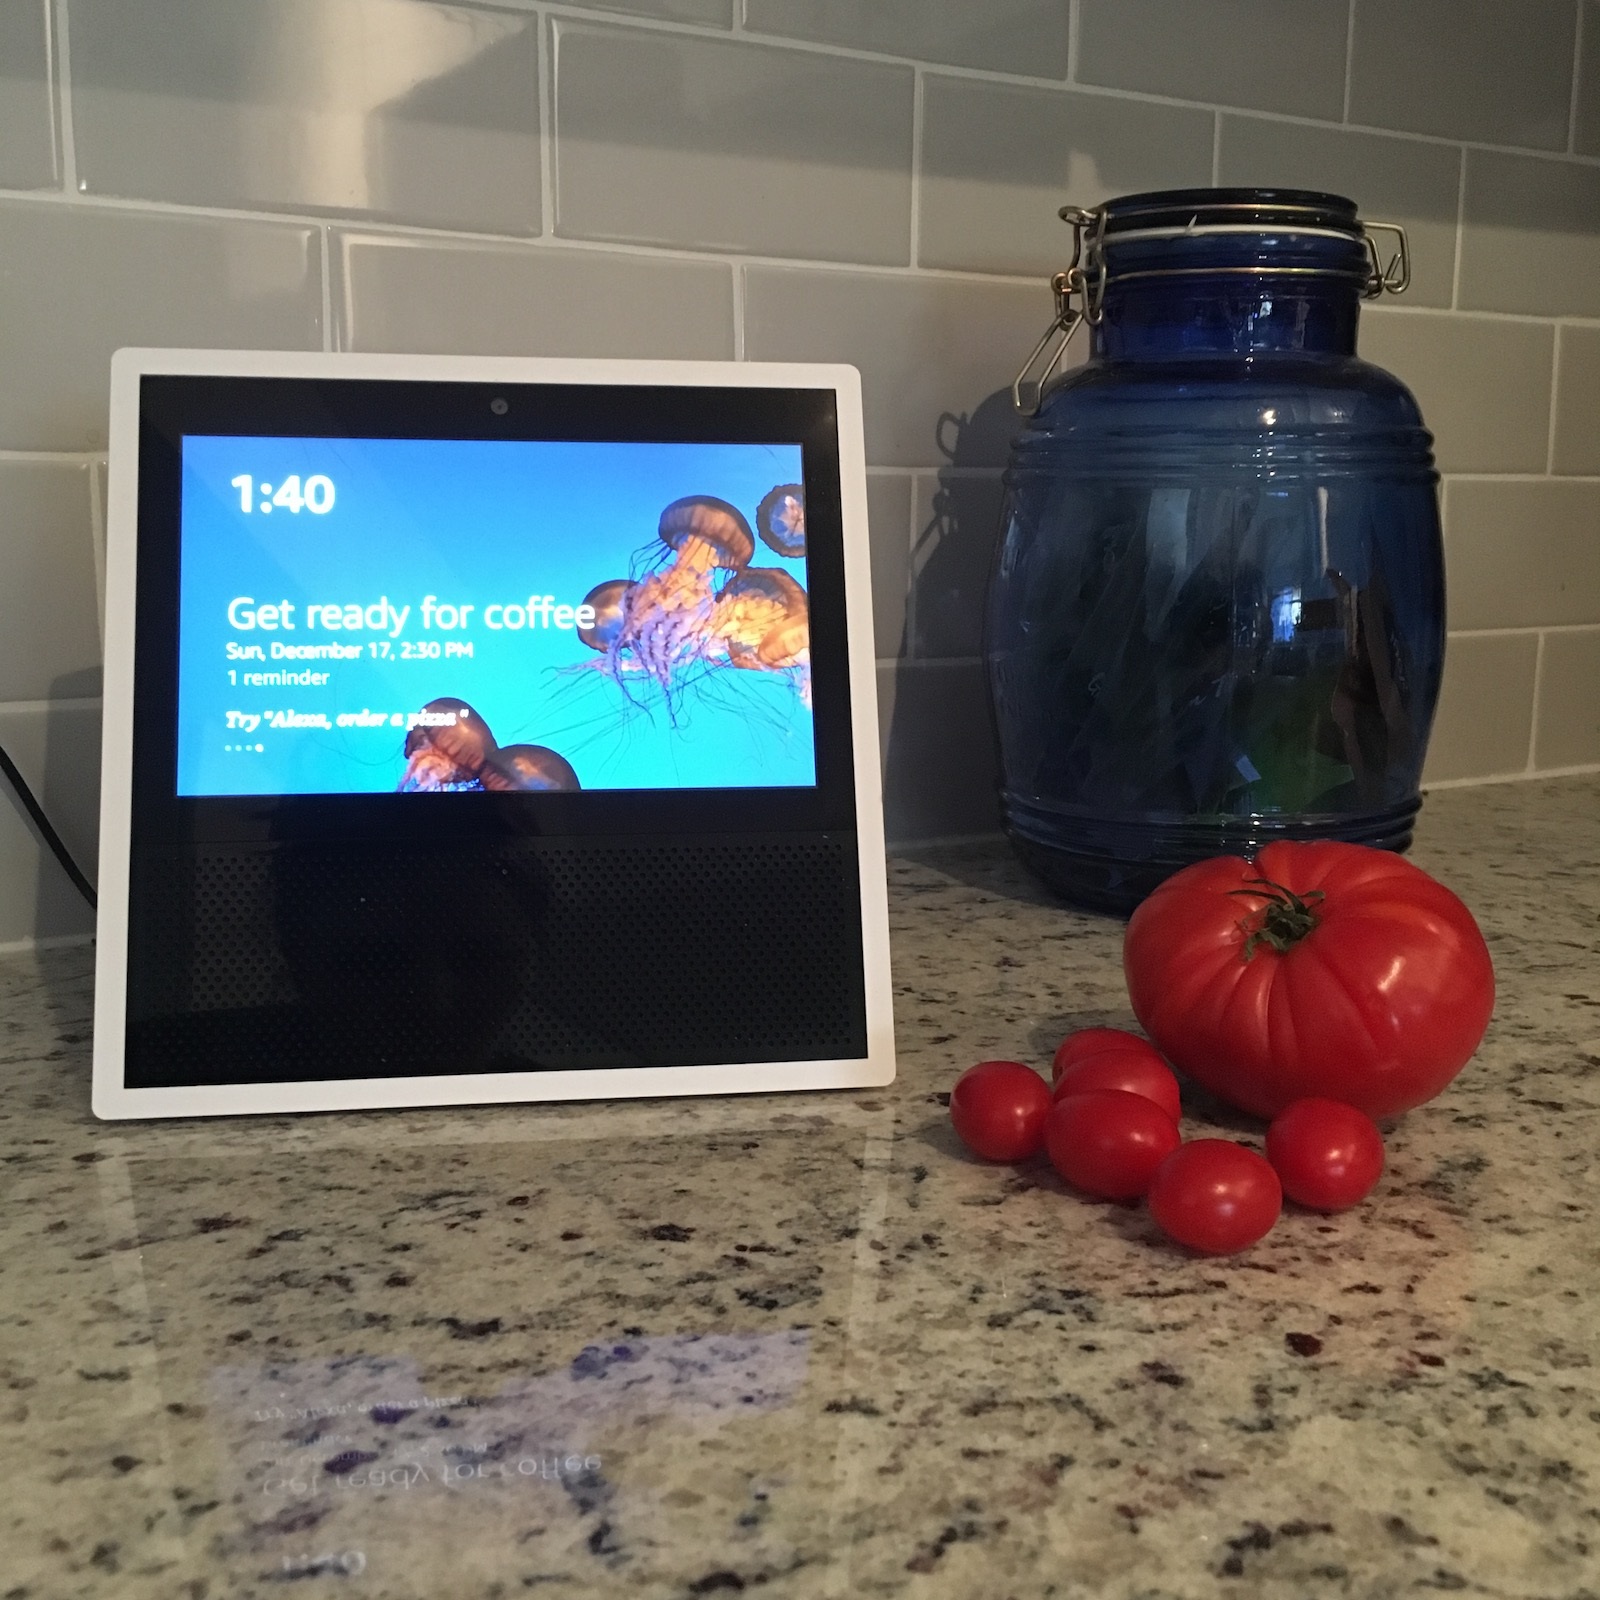 Amazon Echo Show on kitchen counter with tomatoes